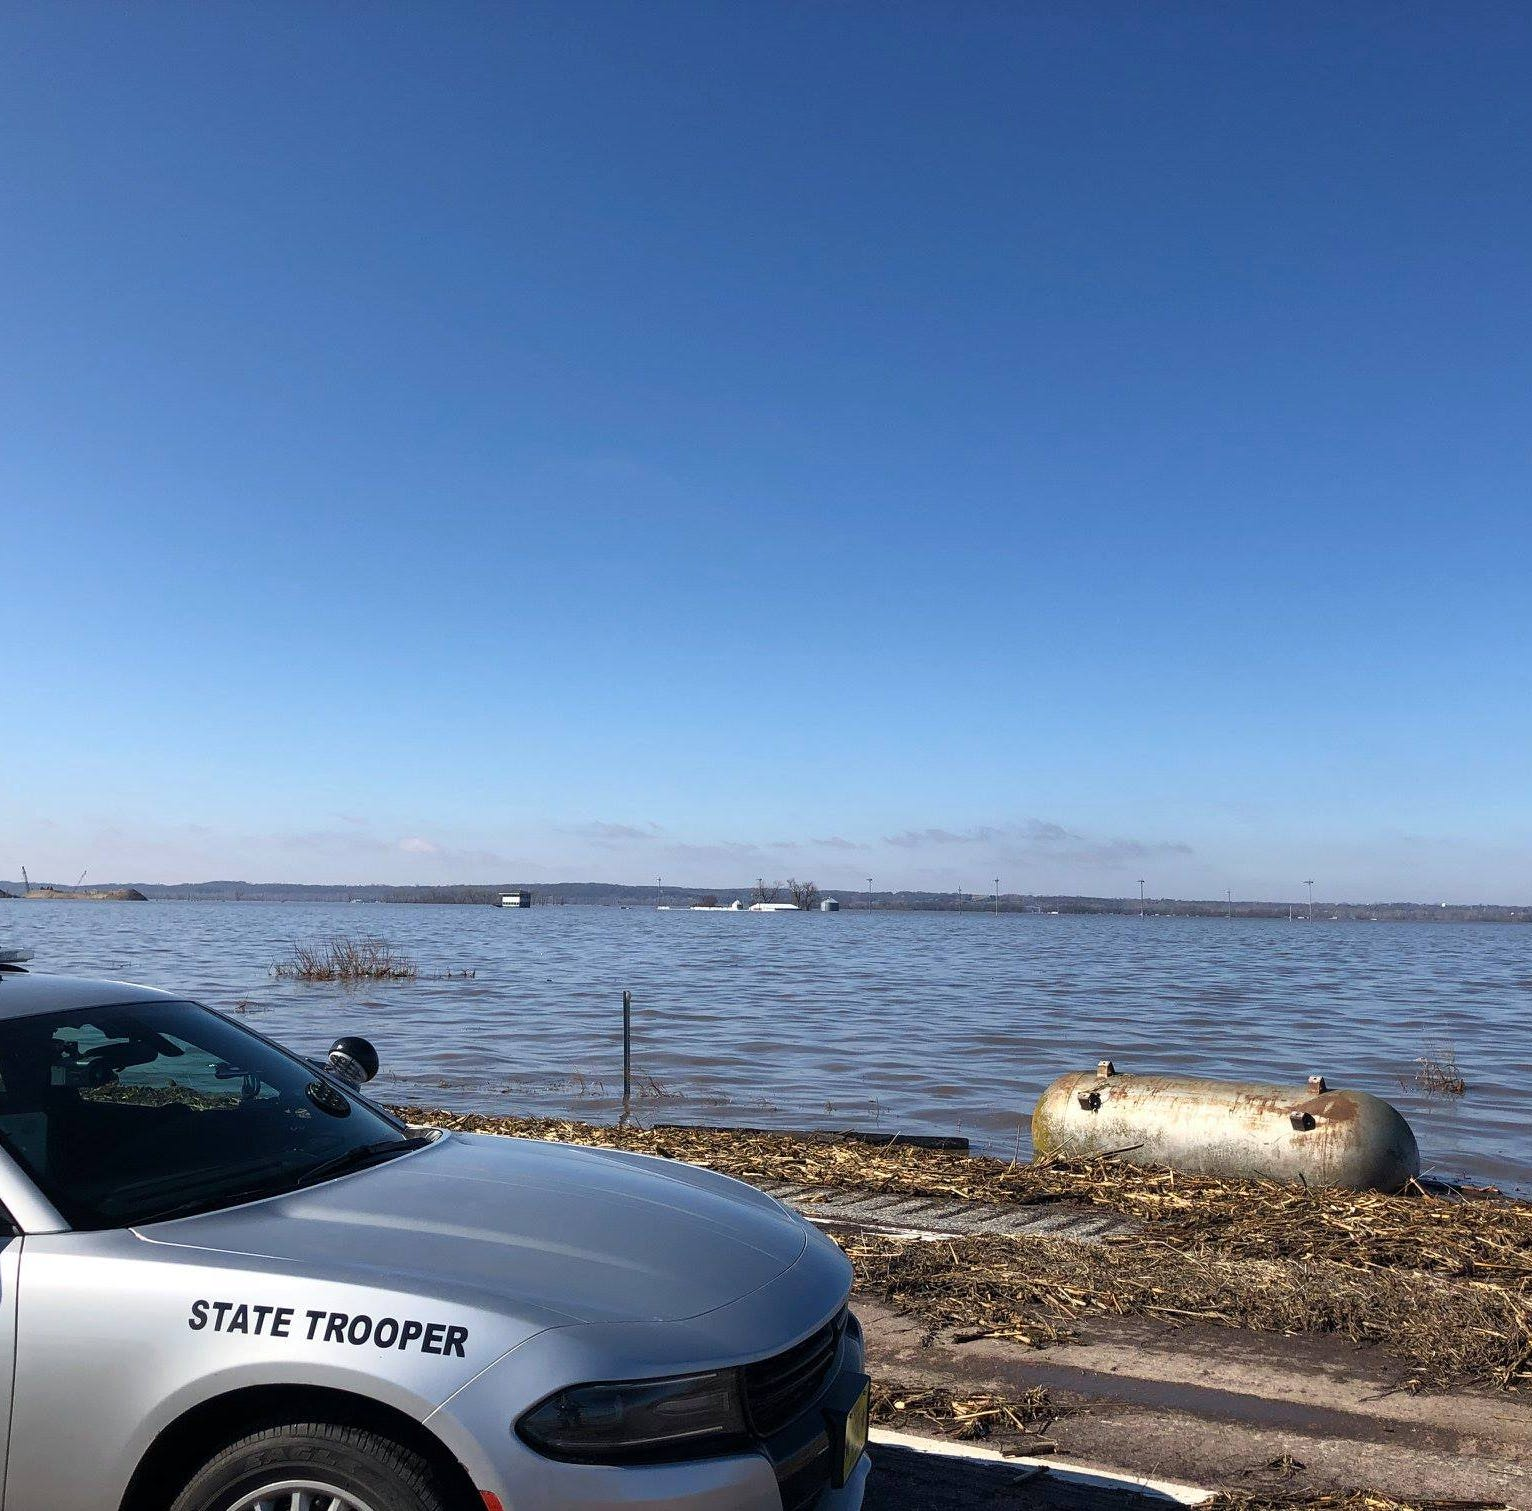 Photos and video taken by Iowa State Patrol troopers on Wednesday show the aftermath of the flooding on Interstate 29 in Iowa.